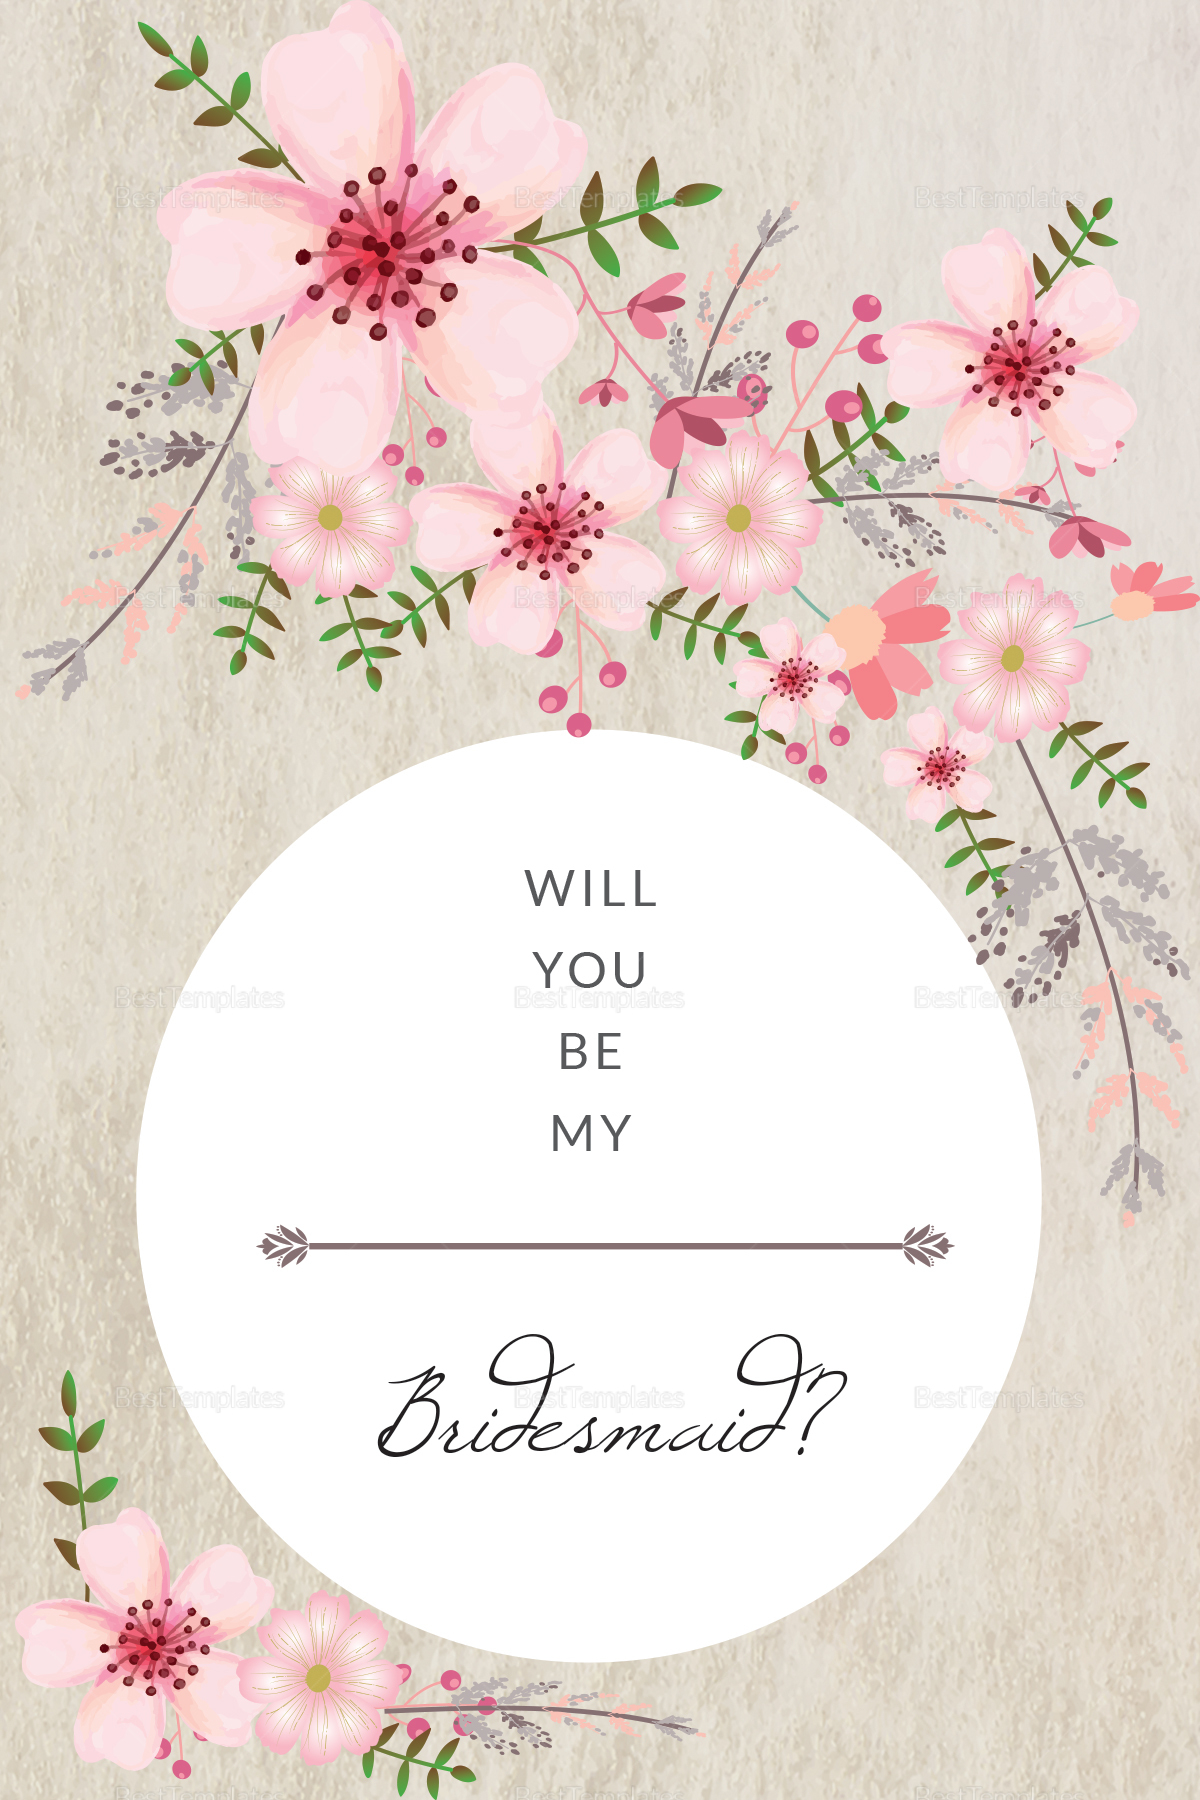 Pink Floral Will You Be My Bridesmaid Card Design Template